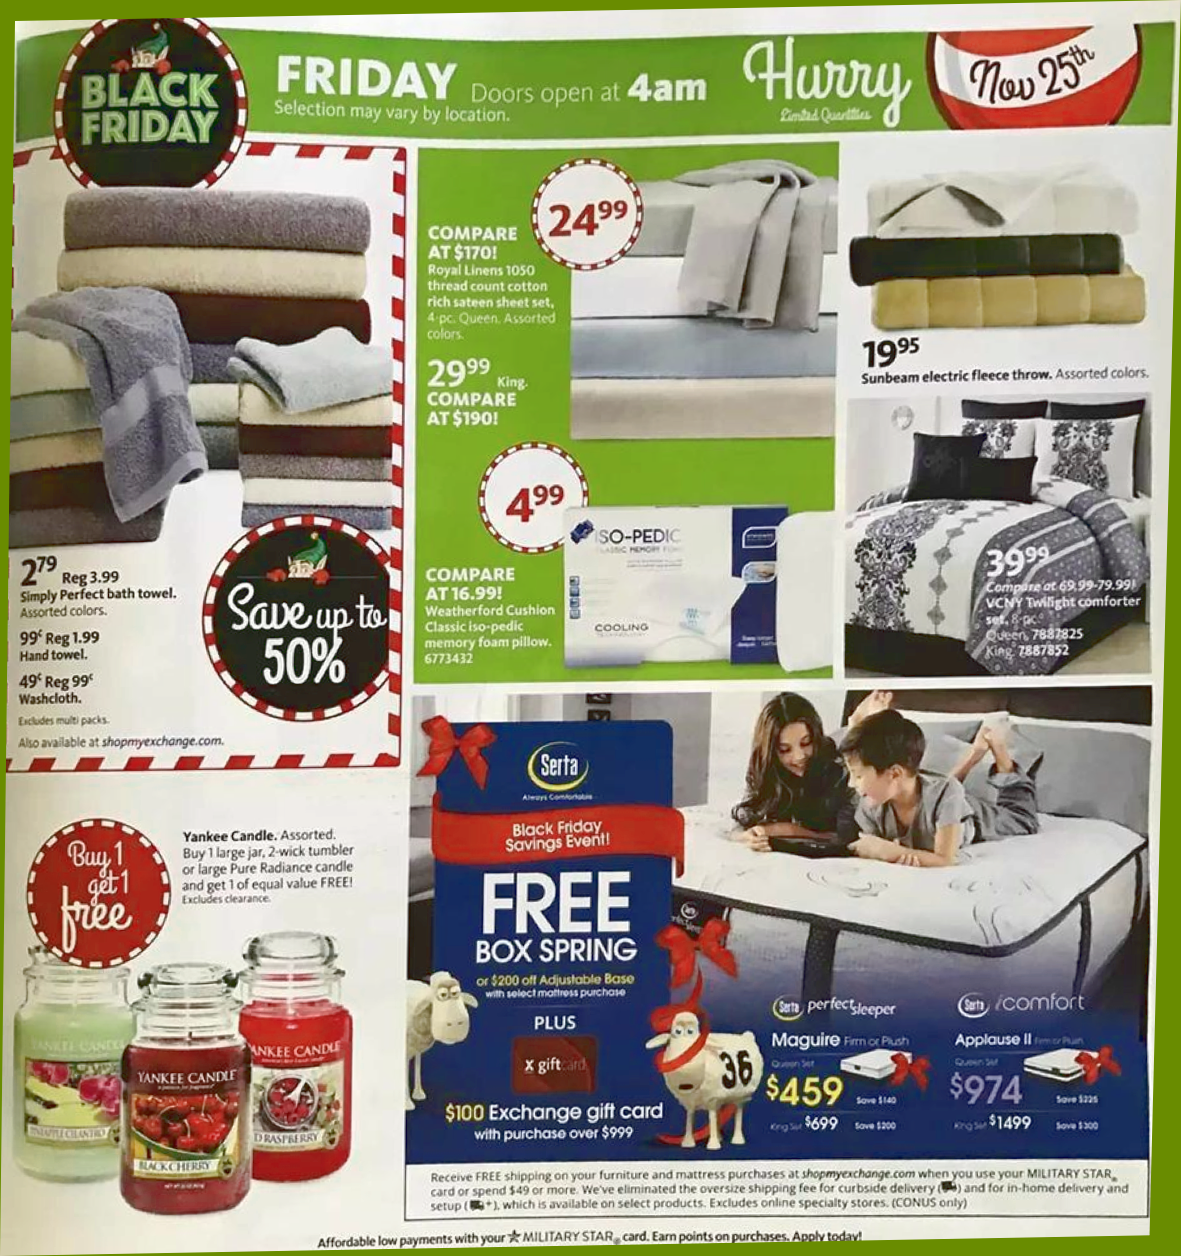 Follow The Page Links To See Each Of Their Black Friday Newspaper Insert 1 2 3 4 5 6 7 8 9 10 11 12 13 14